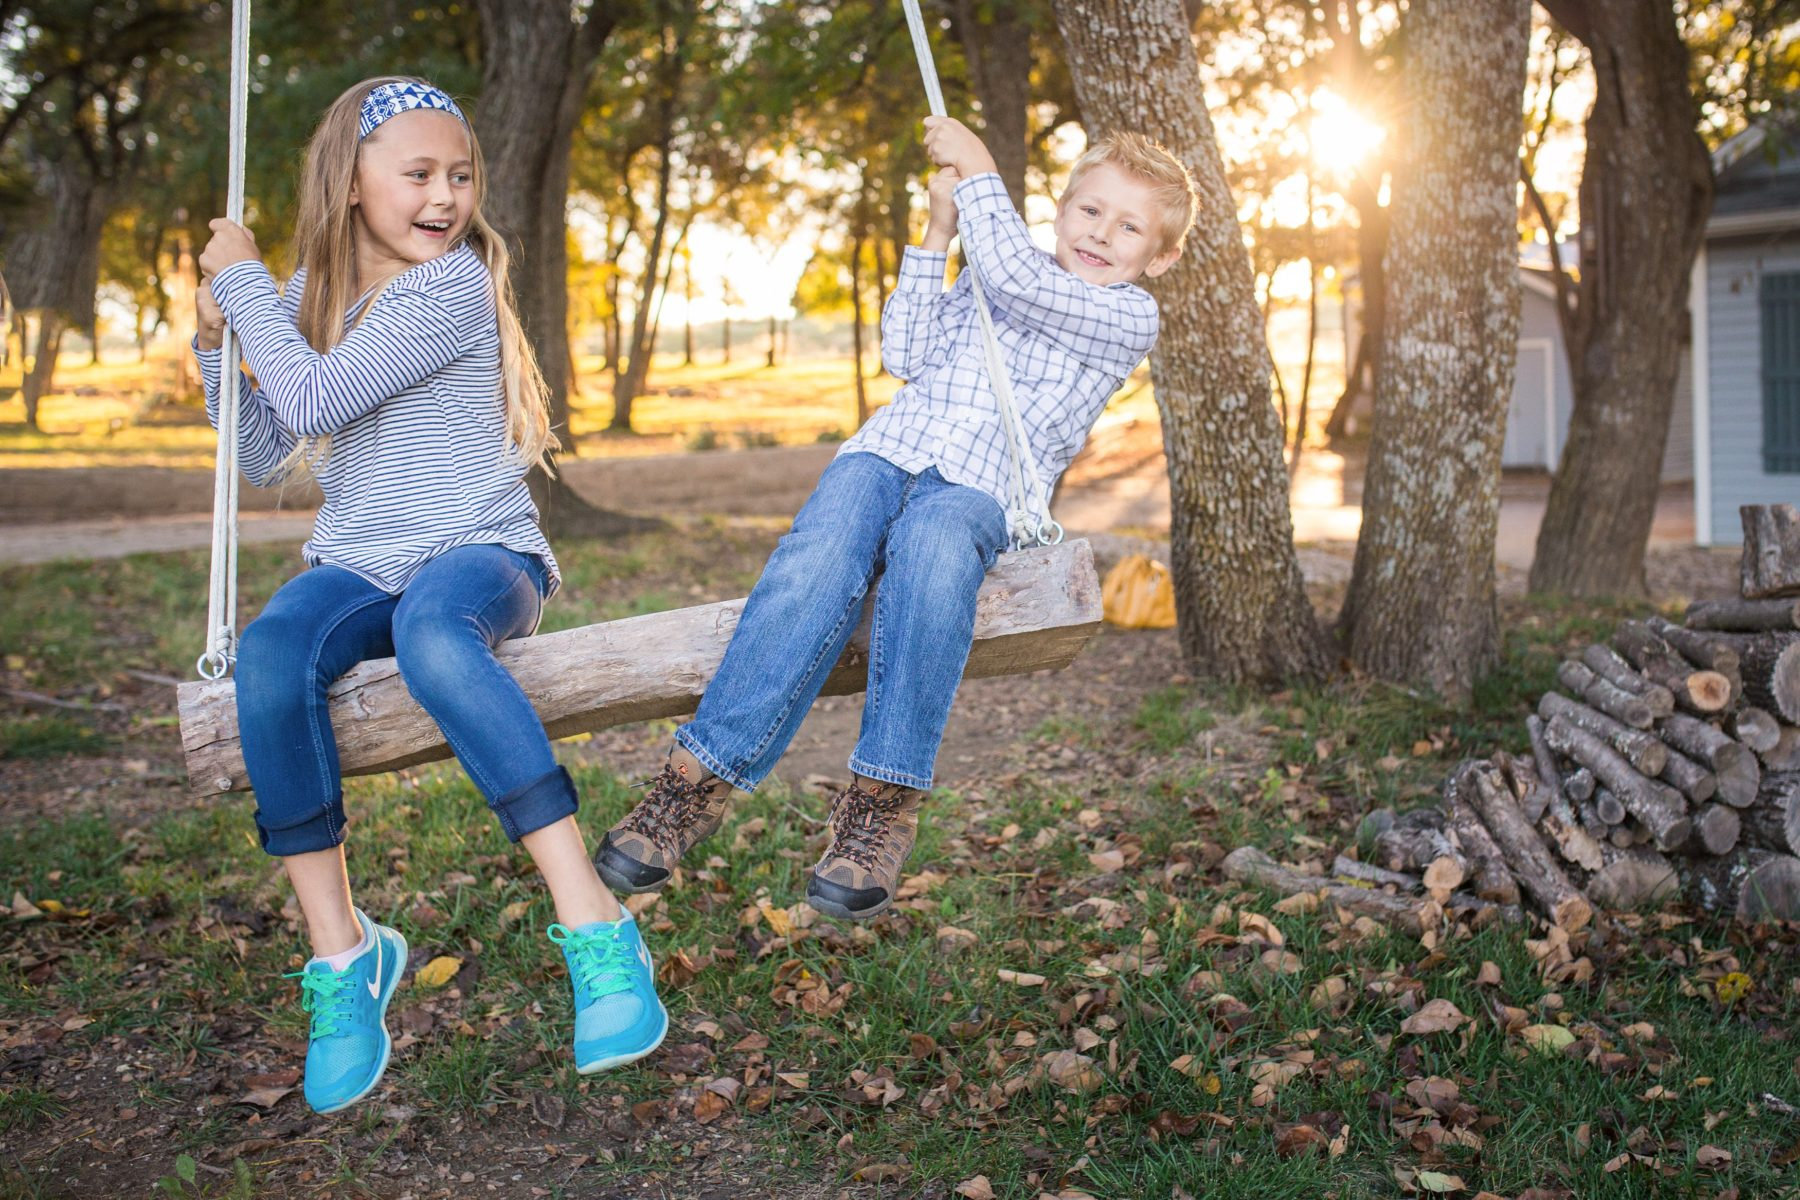 Brother and sister on swing {Family Photographer| Prosper, TX}